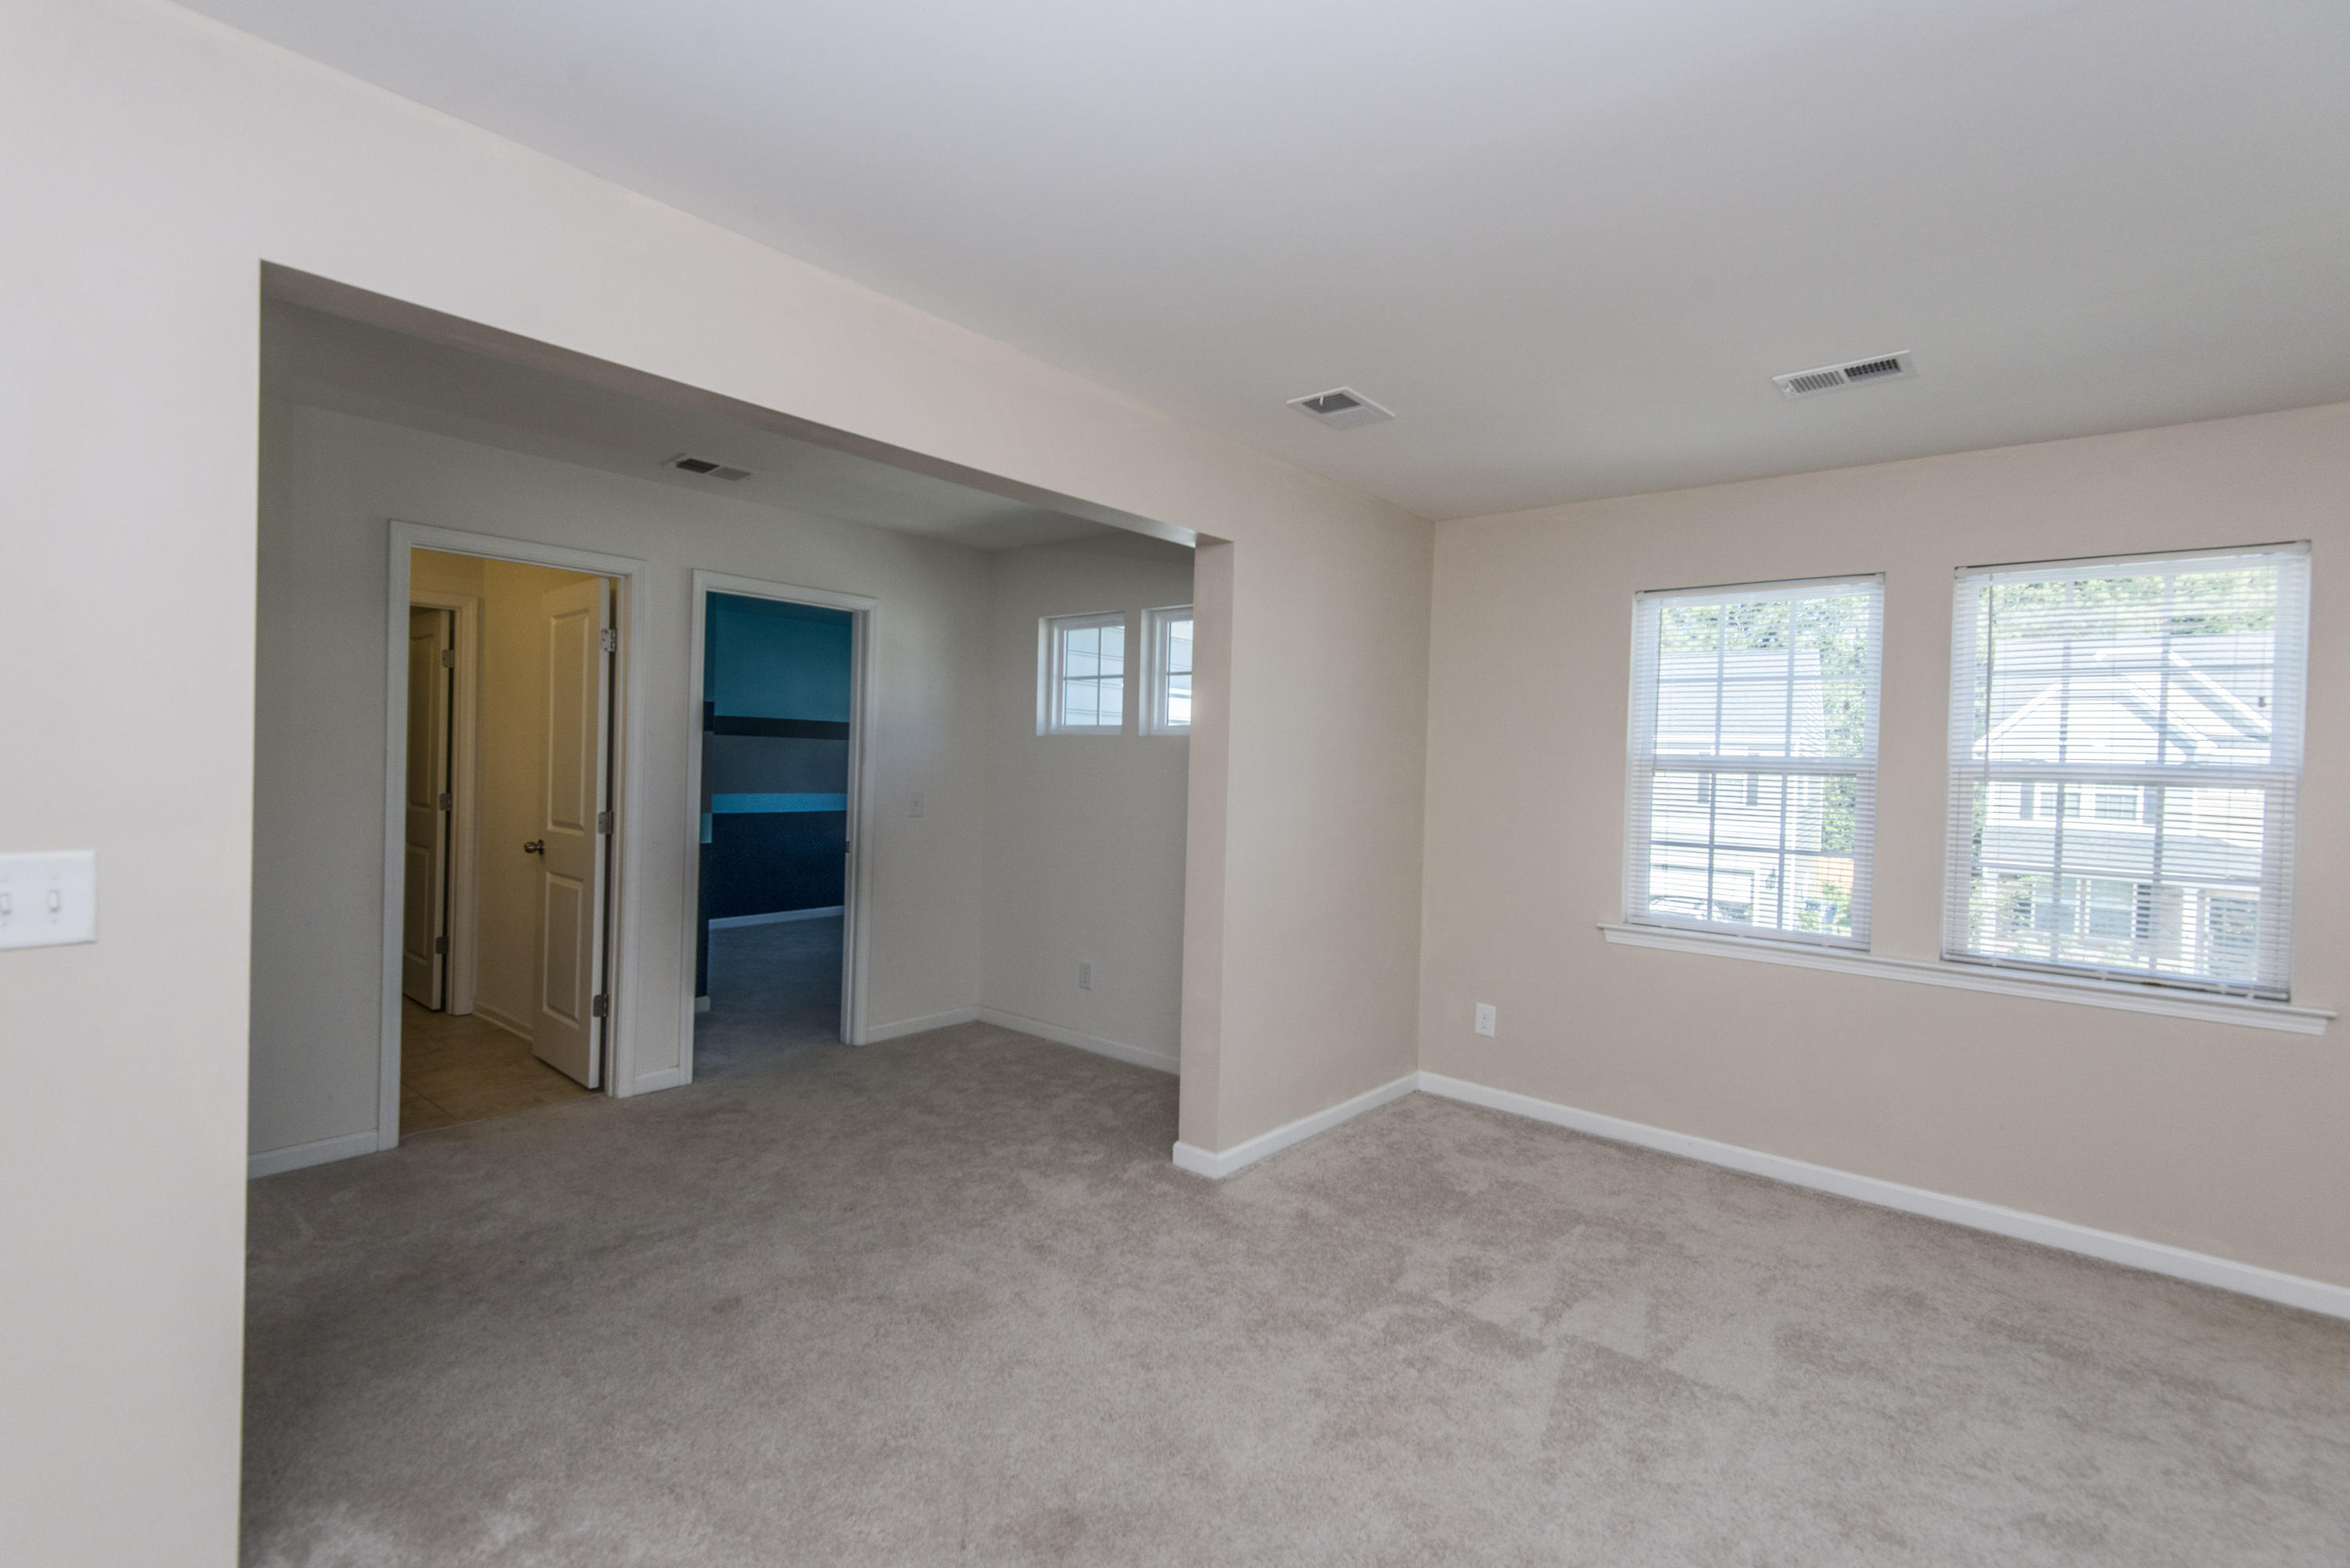 Wentworth Hall Homes For Sale - 216 Wexford, Summerville, SC - 27